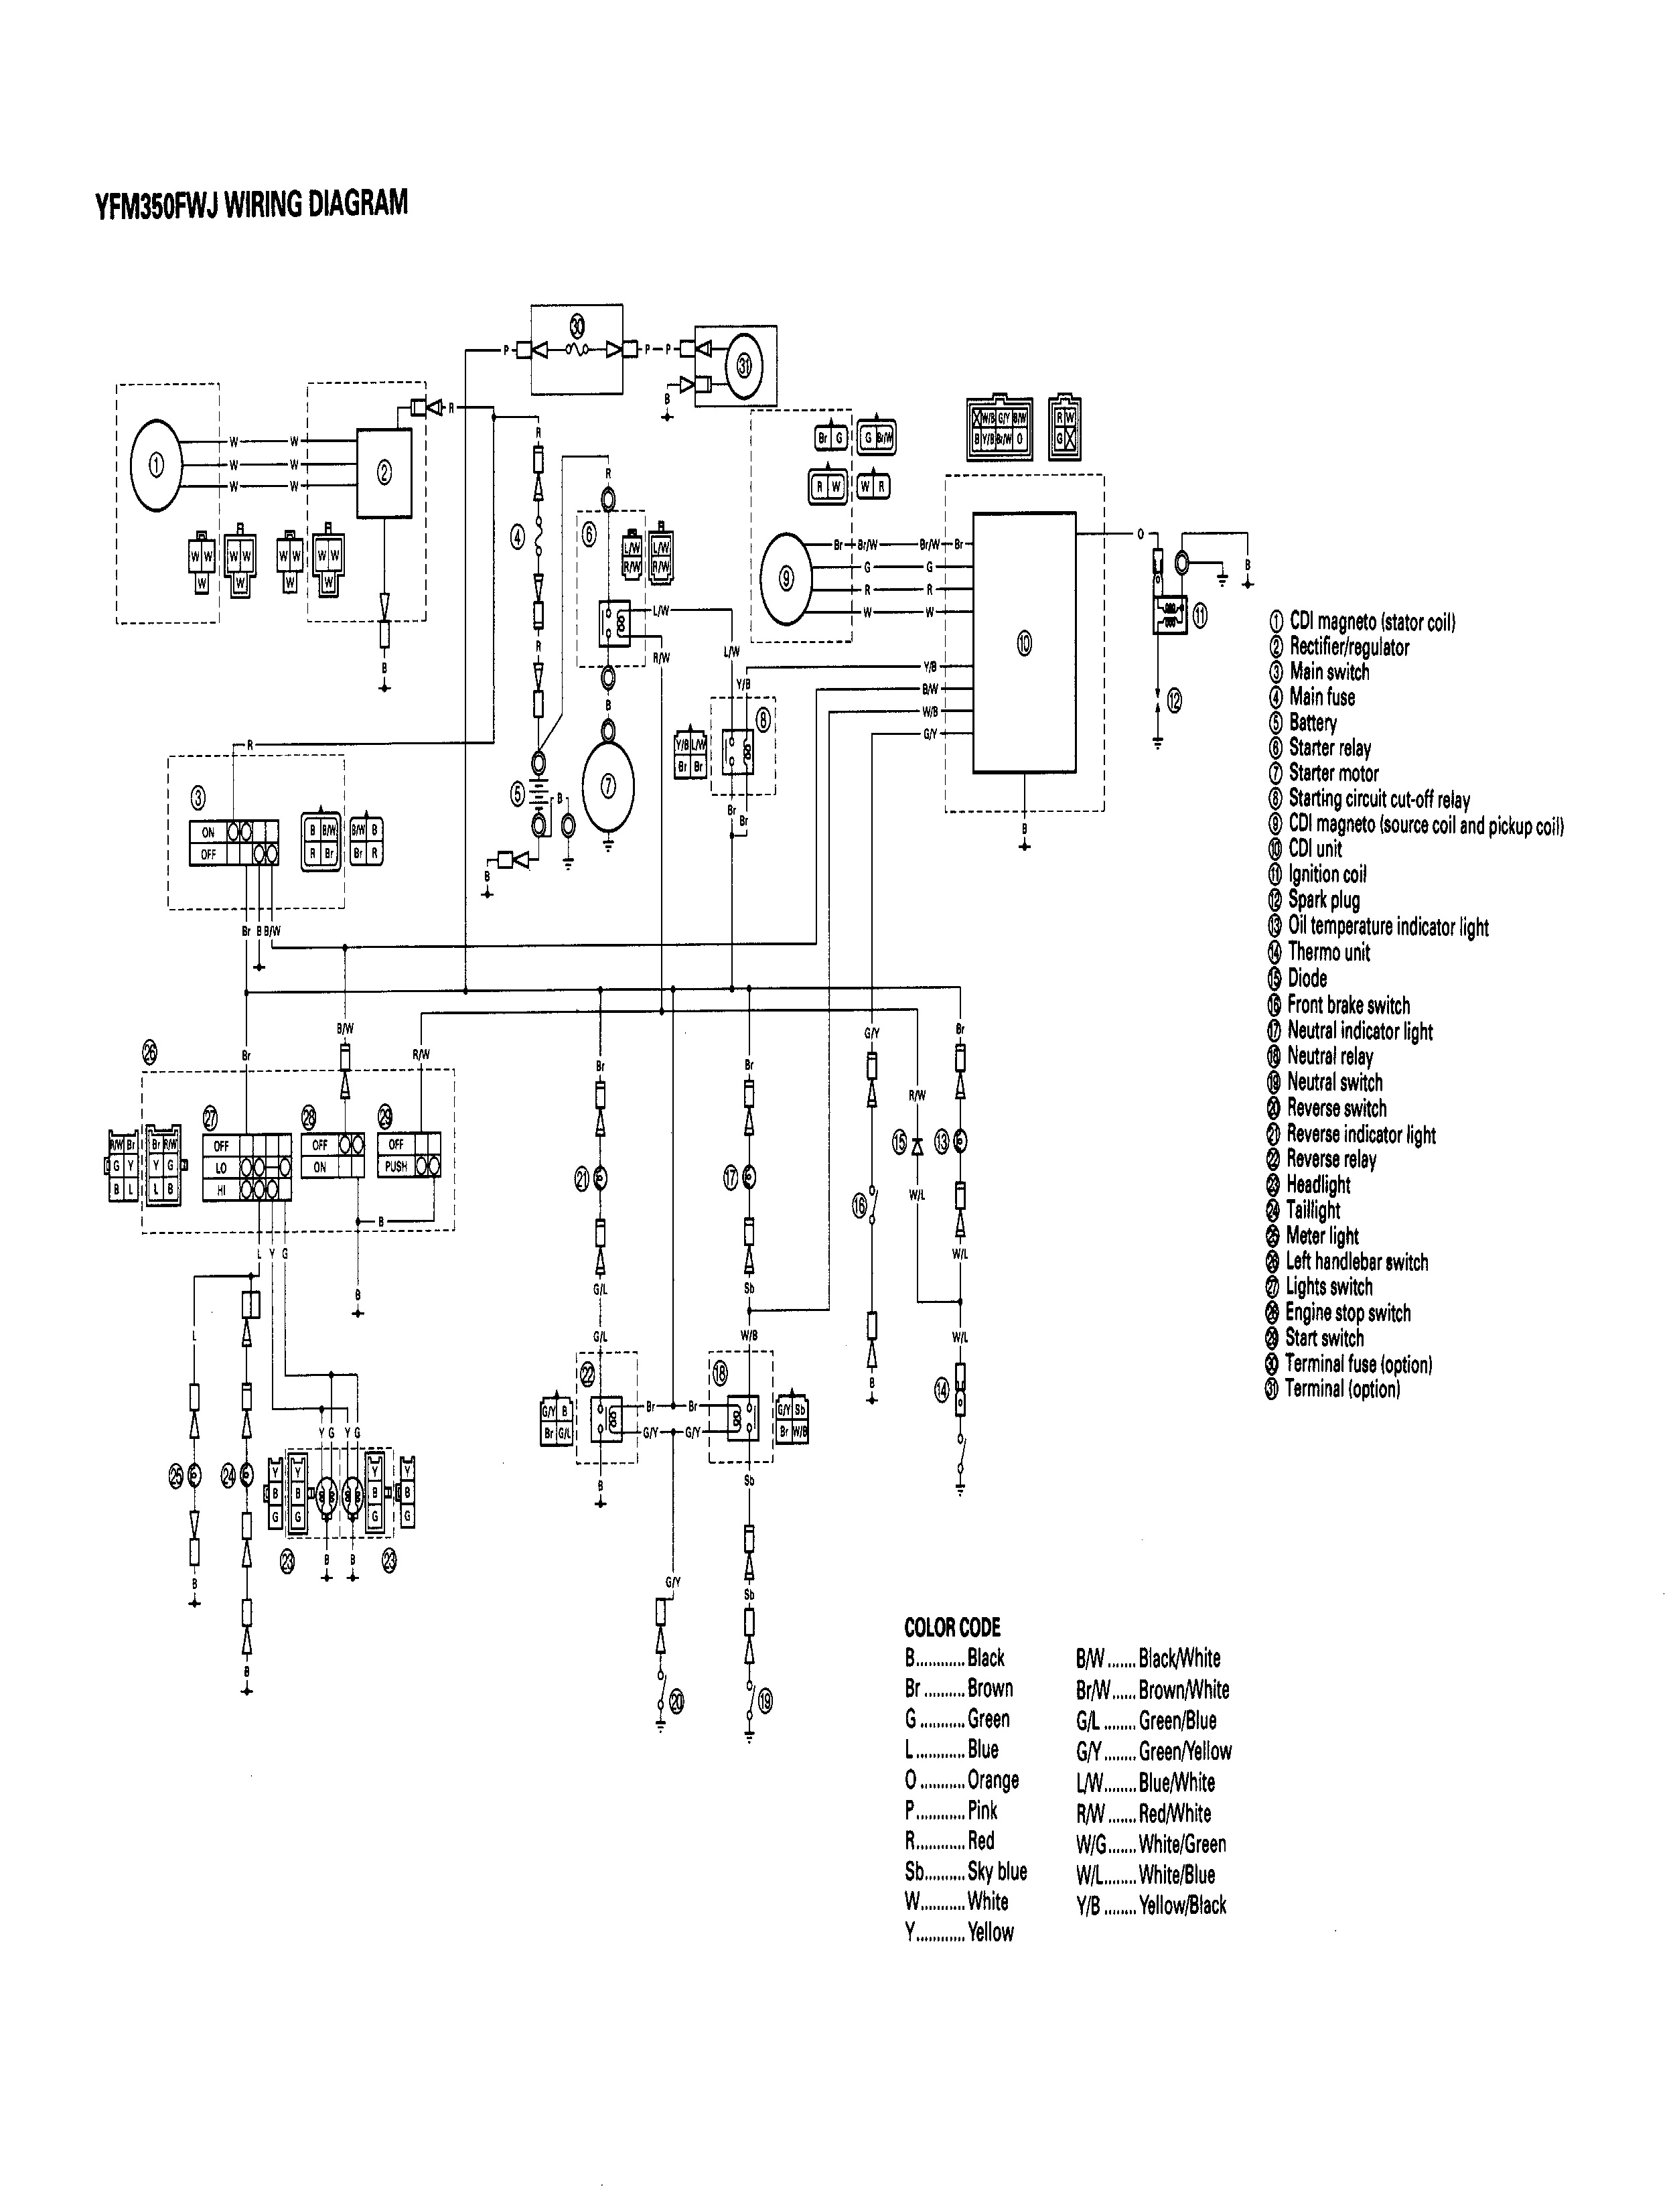 f53 wiring diagram bmw x fuse box diagram wiring diagrams yamaha big bear wiring diagram auto wiring diagram schematic big bear 350 4x4 electrical issue yamaha